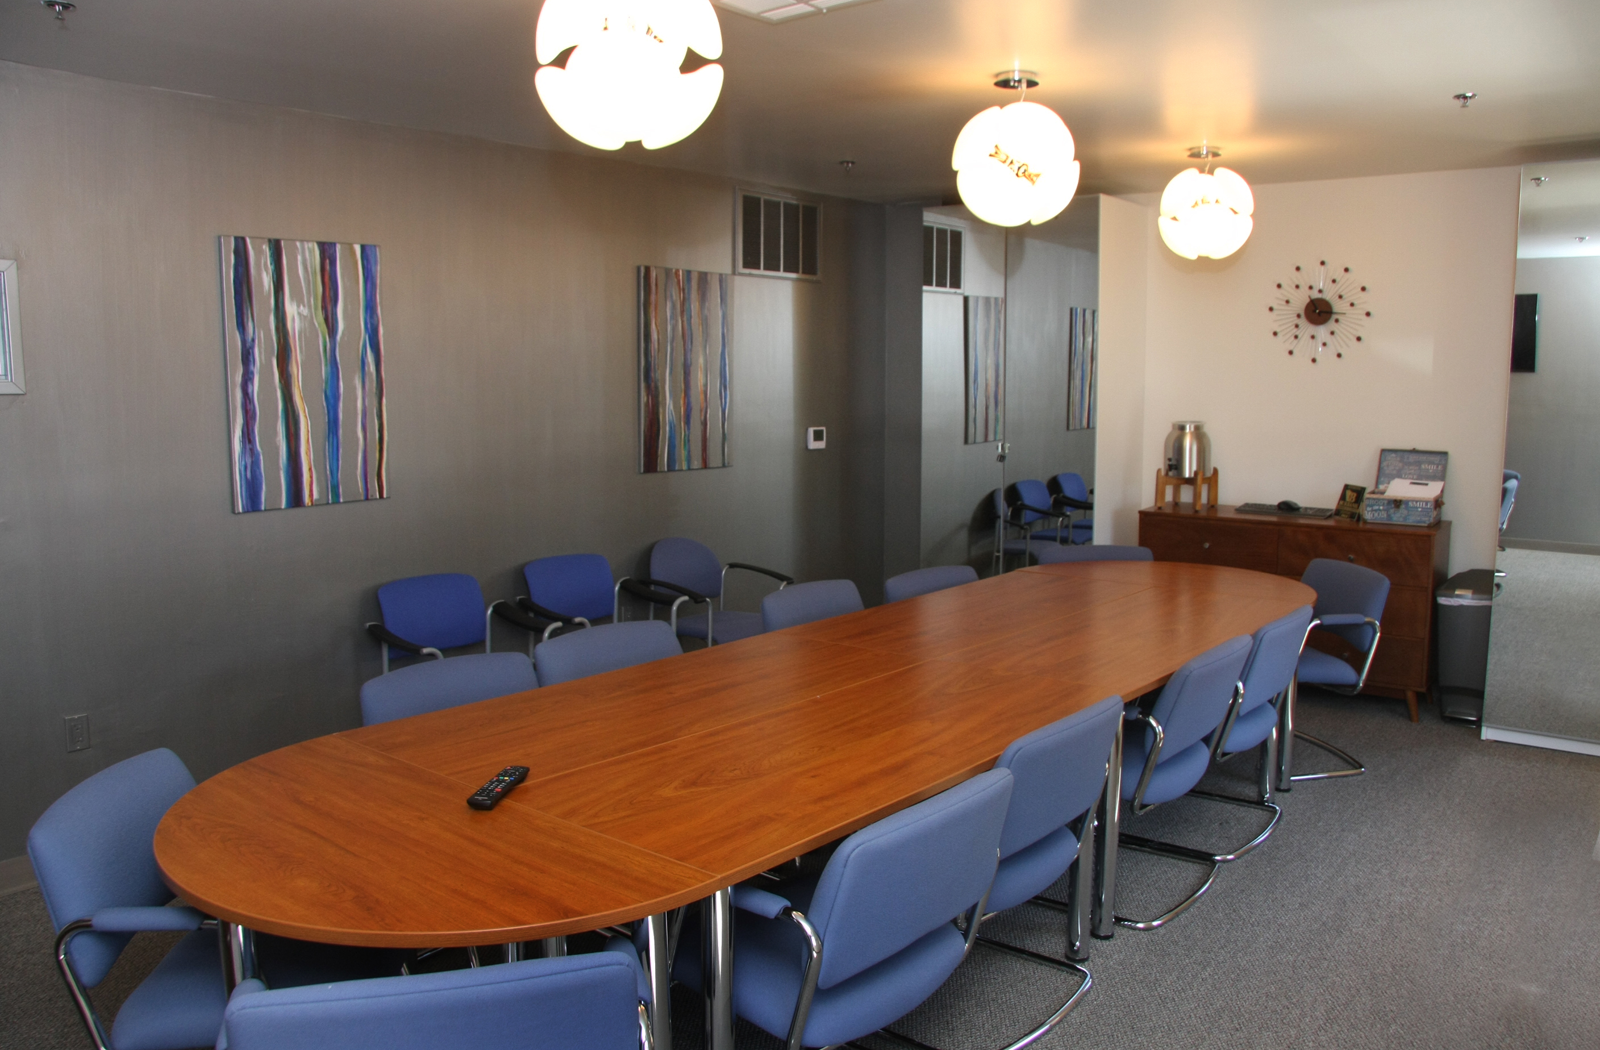 Flexible workspace and conference room at 124 E Olive Ave., Burbank, CA 91502